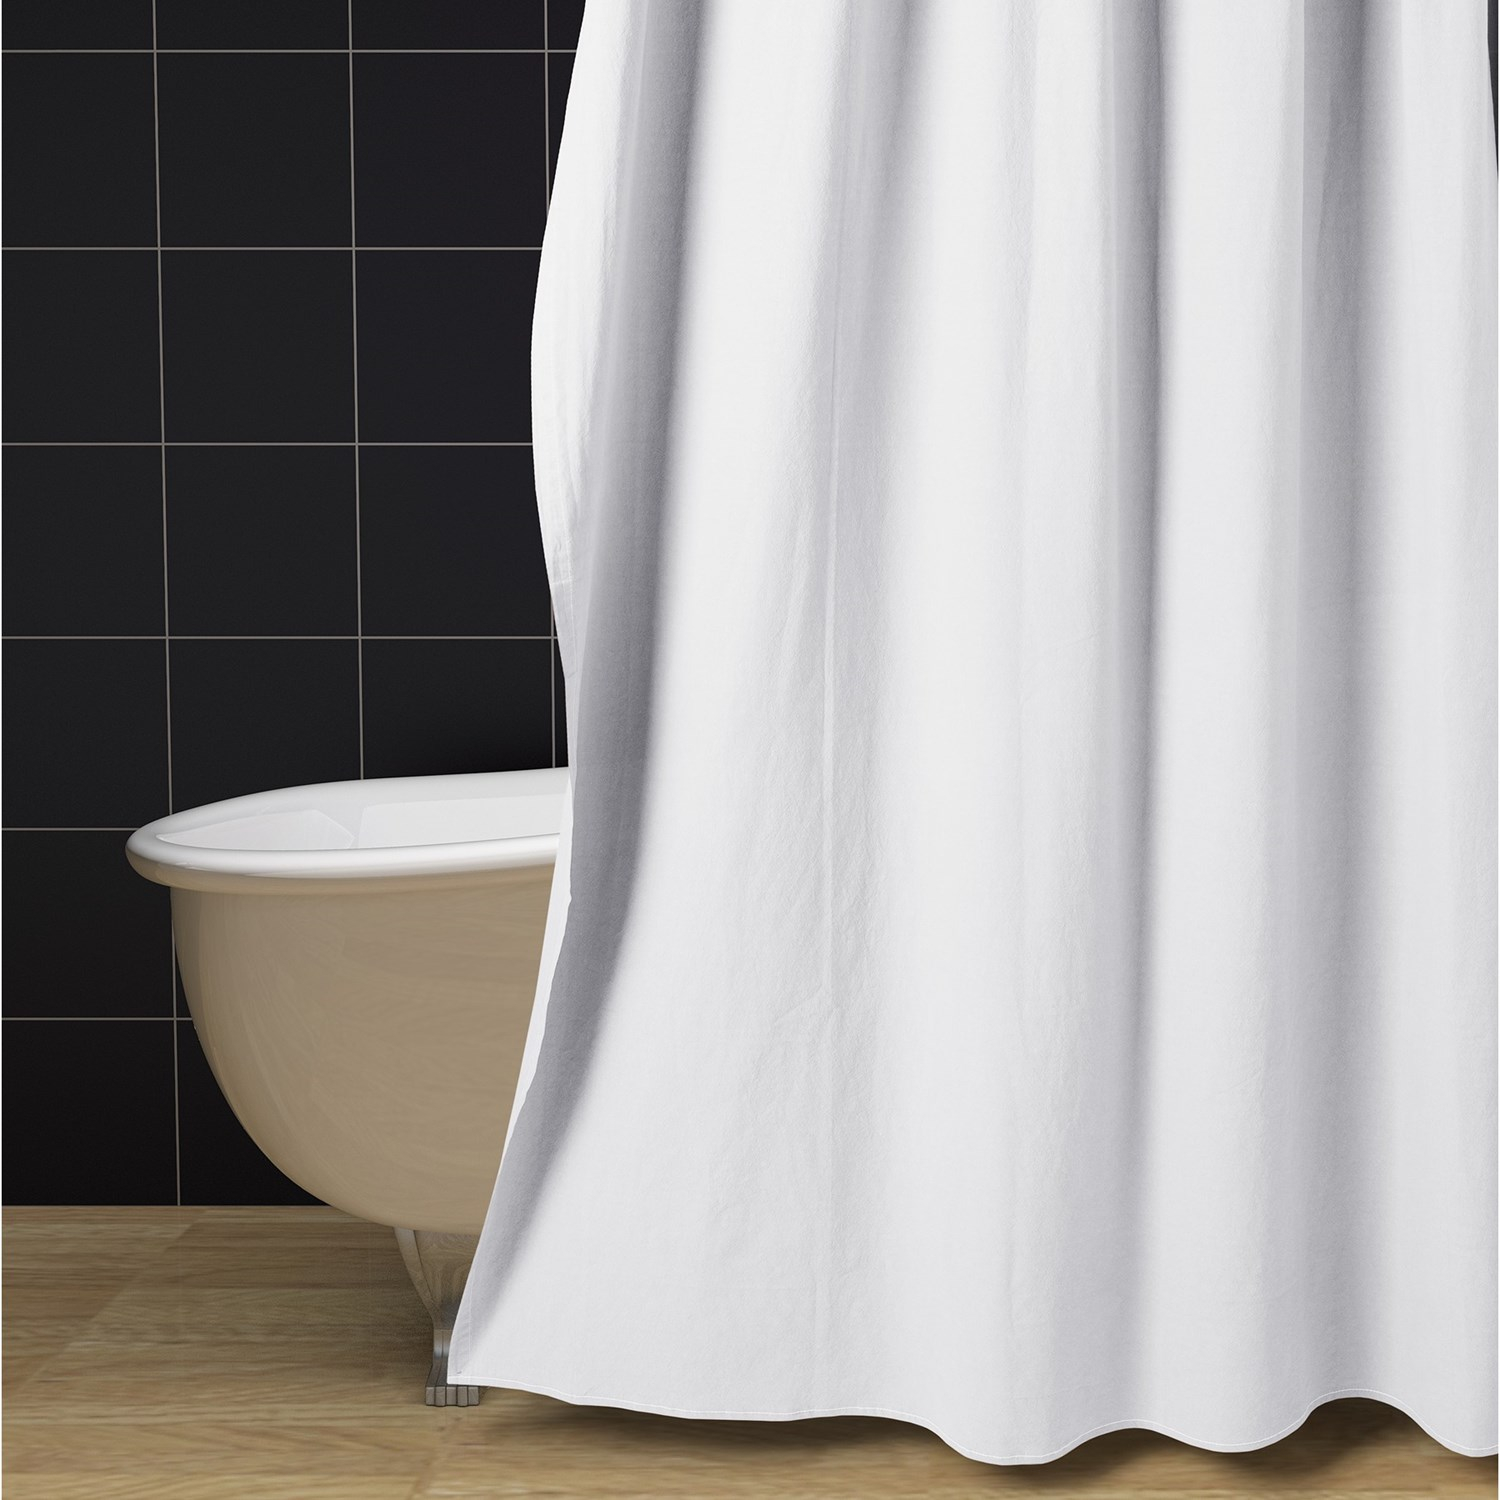 Extended Length Shower Curtain Liners • Shower Curtains Ideas